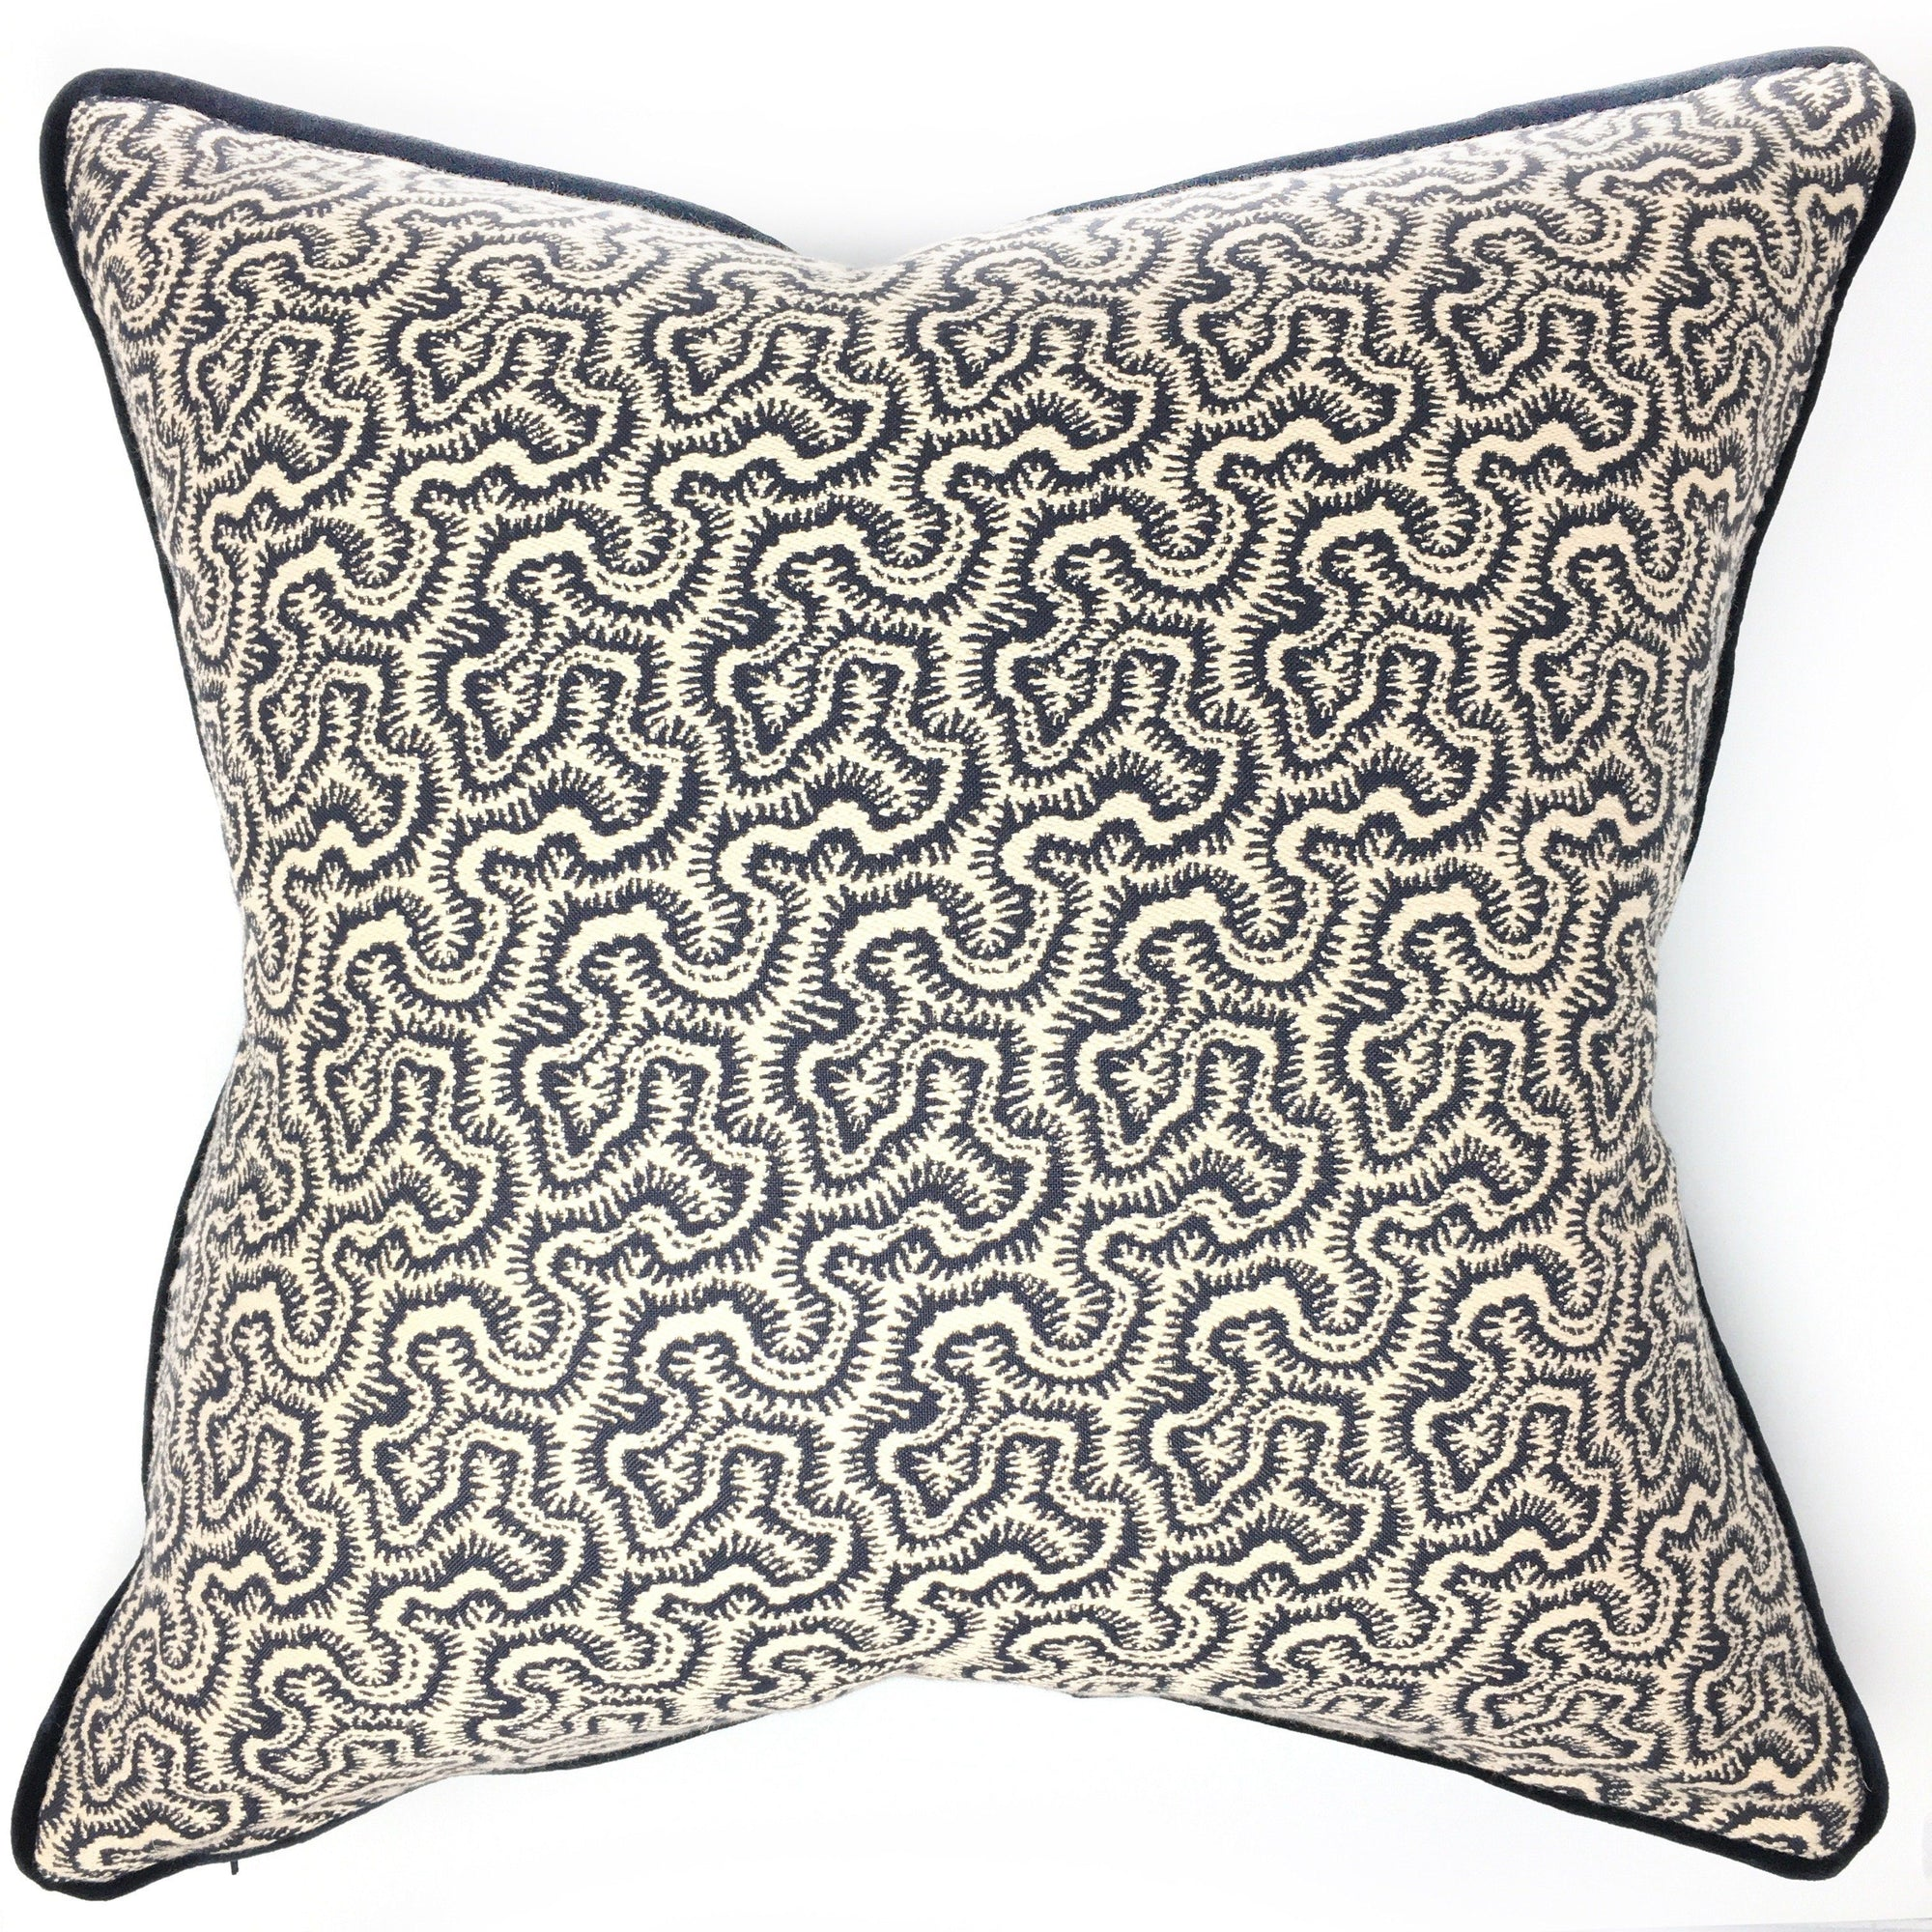 Hayman Scatter Cushion - Barnbury